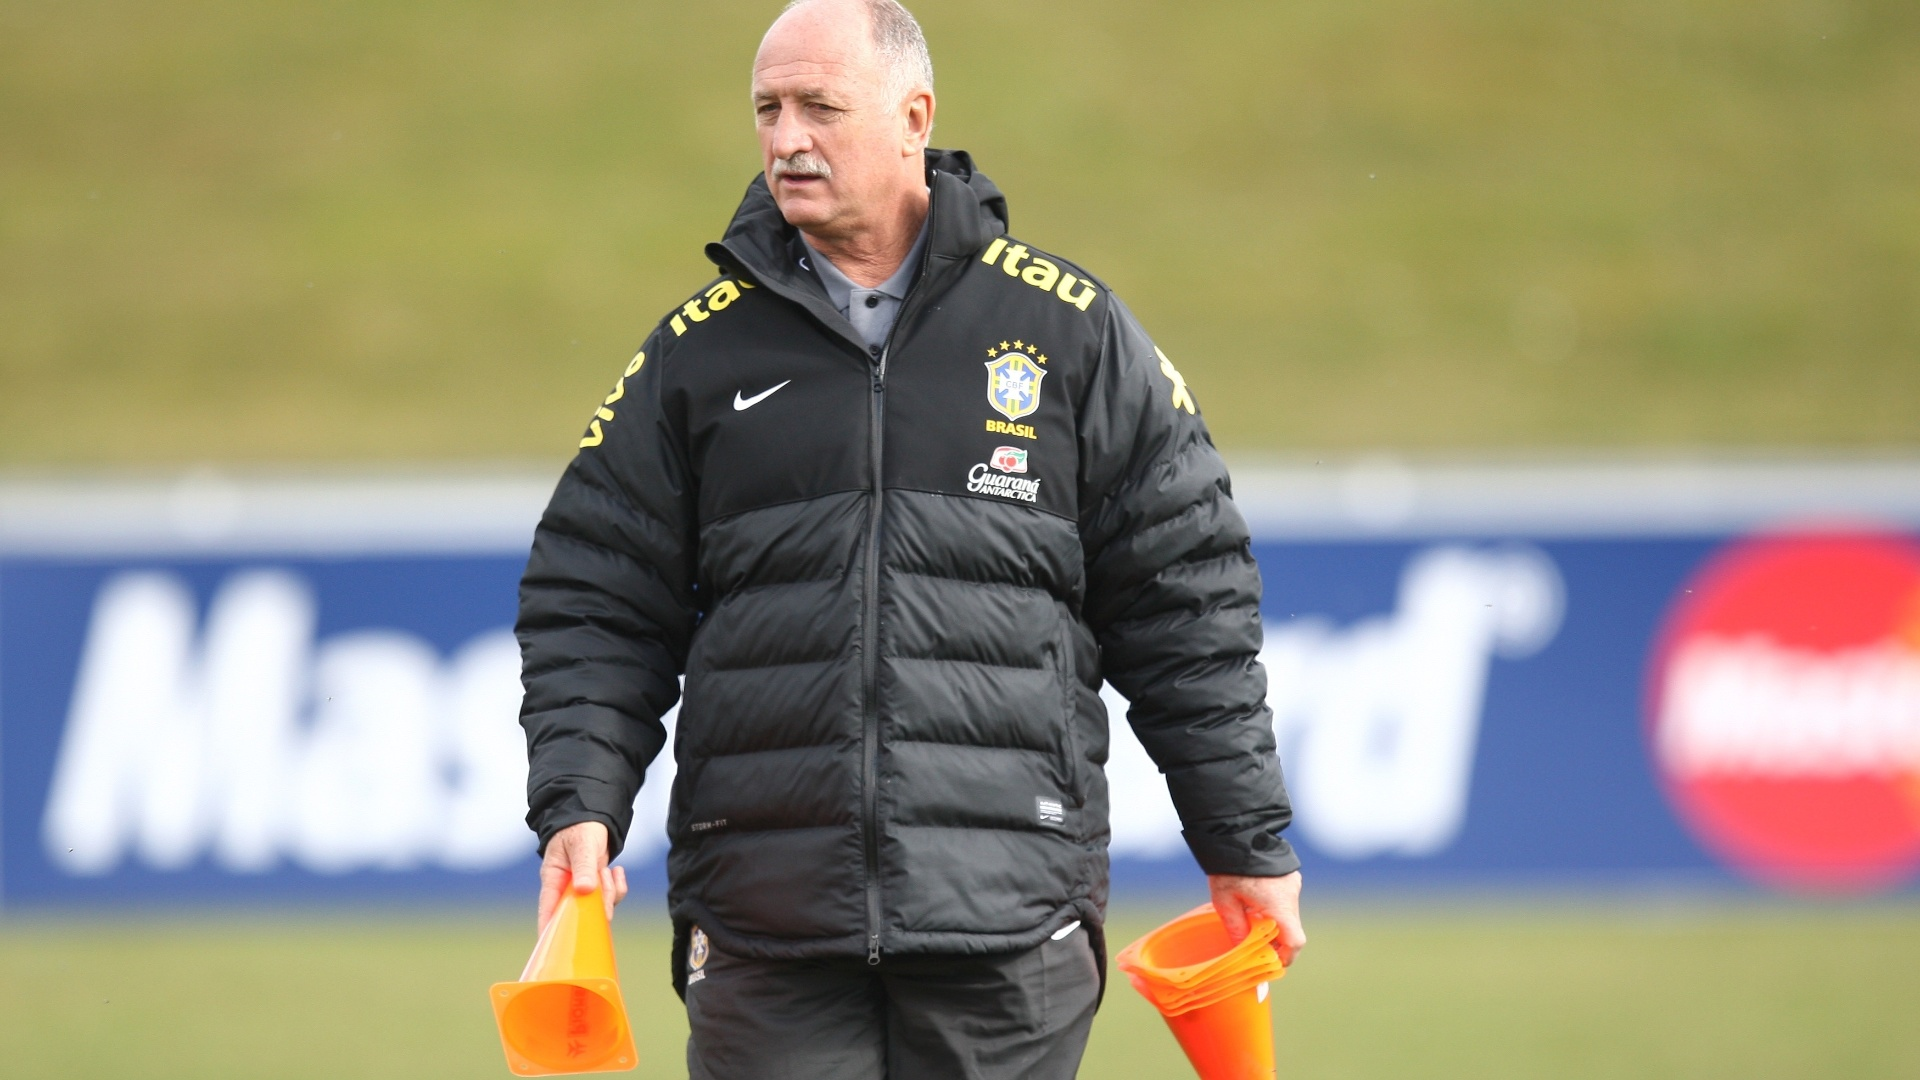 20.mar.2013 - O tcnico Luiz Felipe Scolari comanda treino da seleo brasileira nesta quarta-feira em Genebra, na Sua